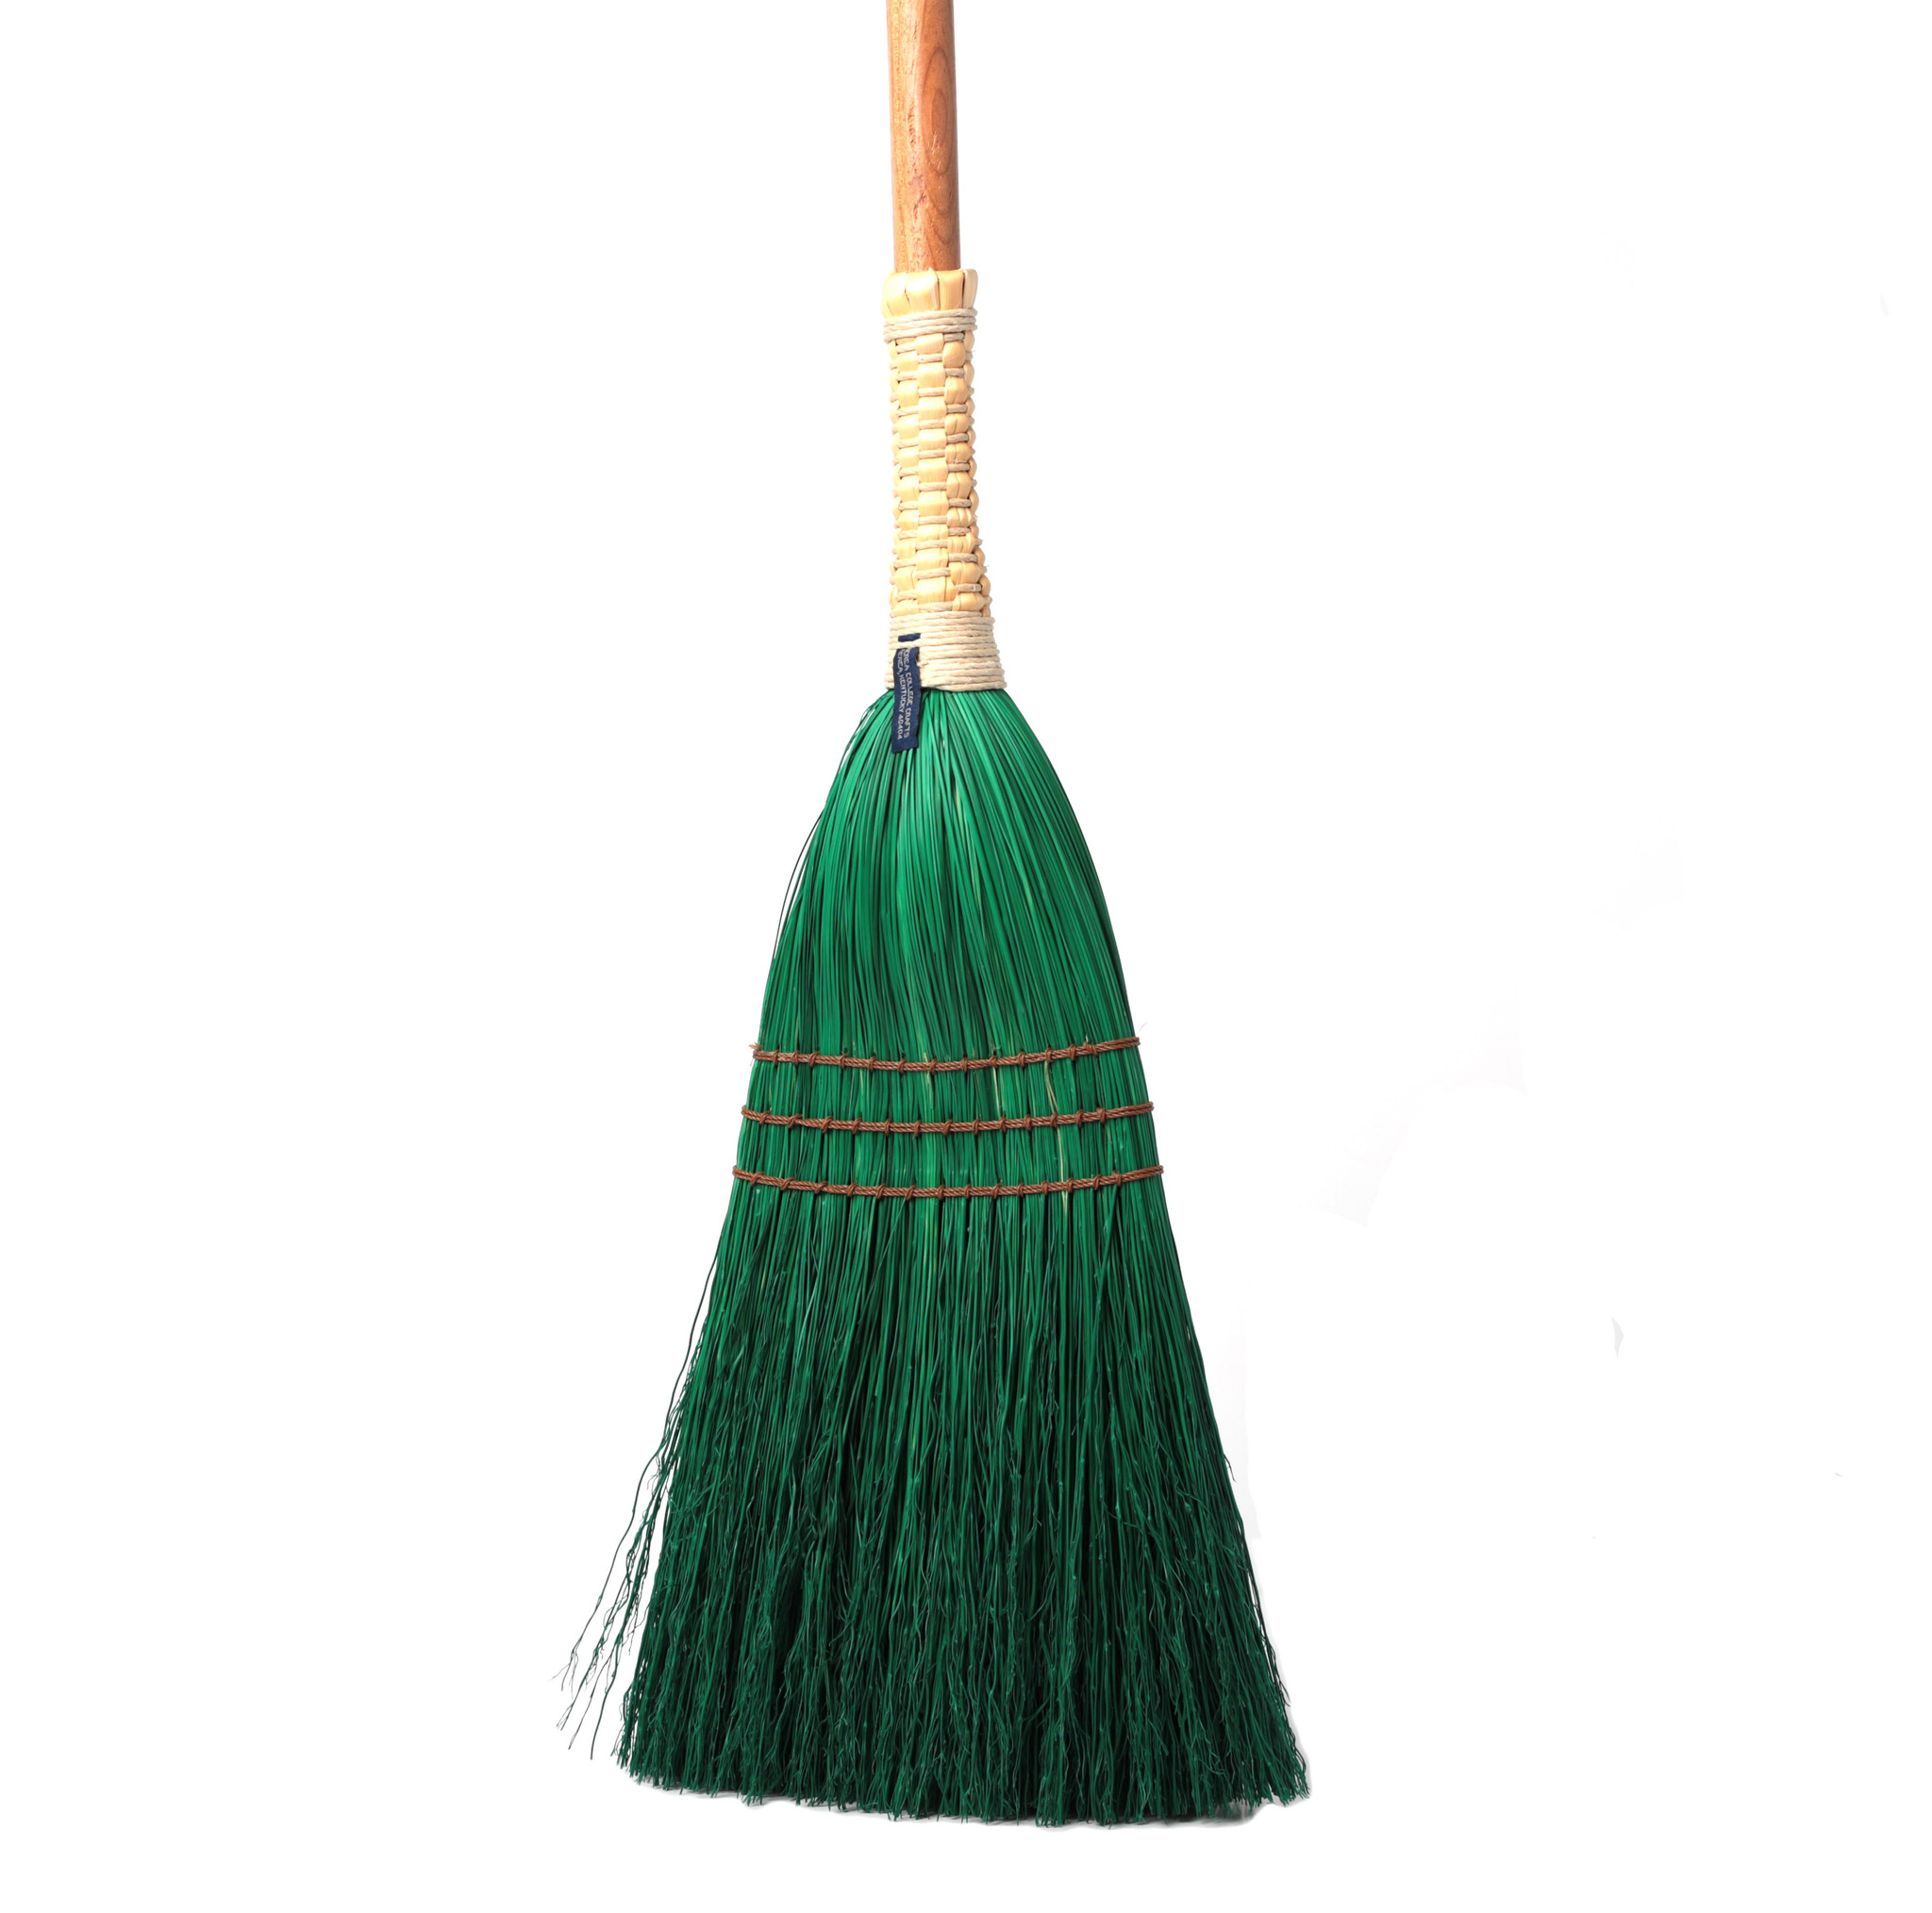 Shaker Braid Broom - Turned Handle-3